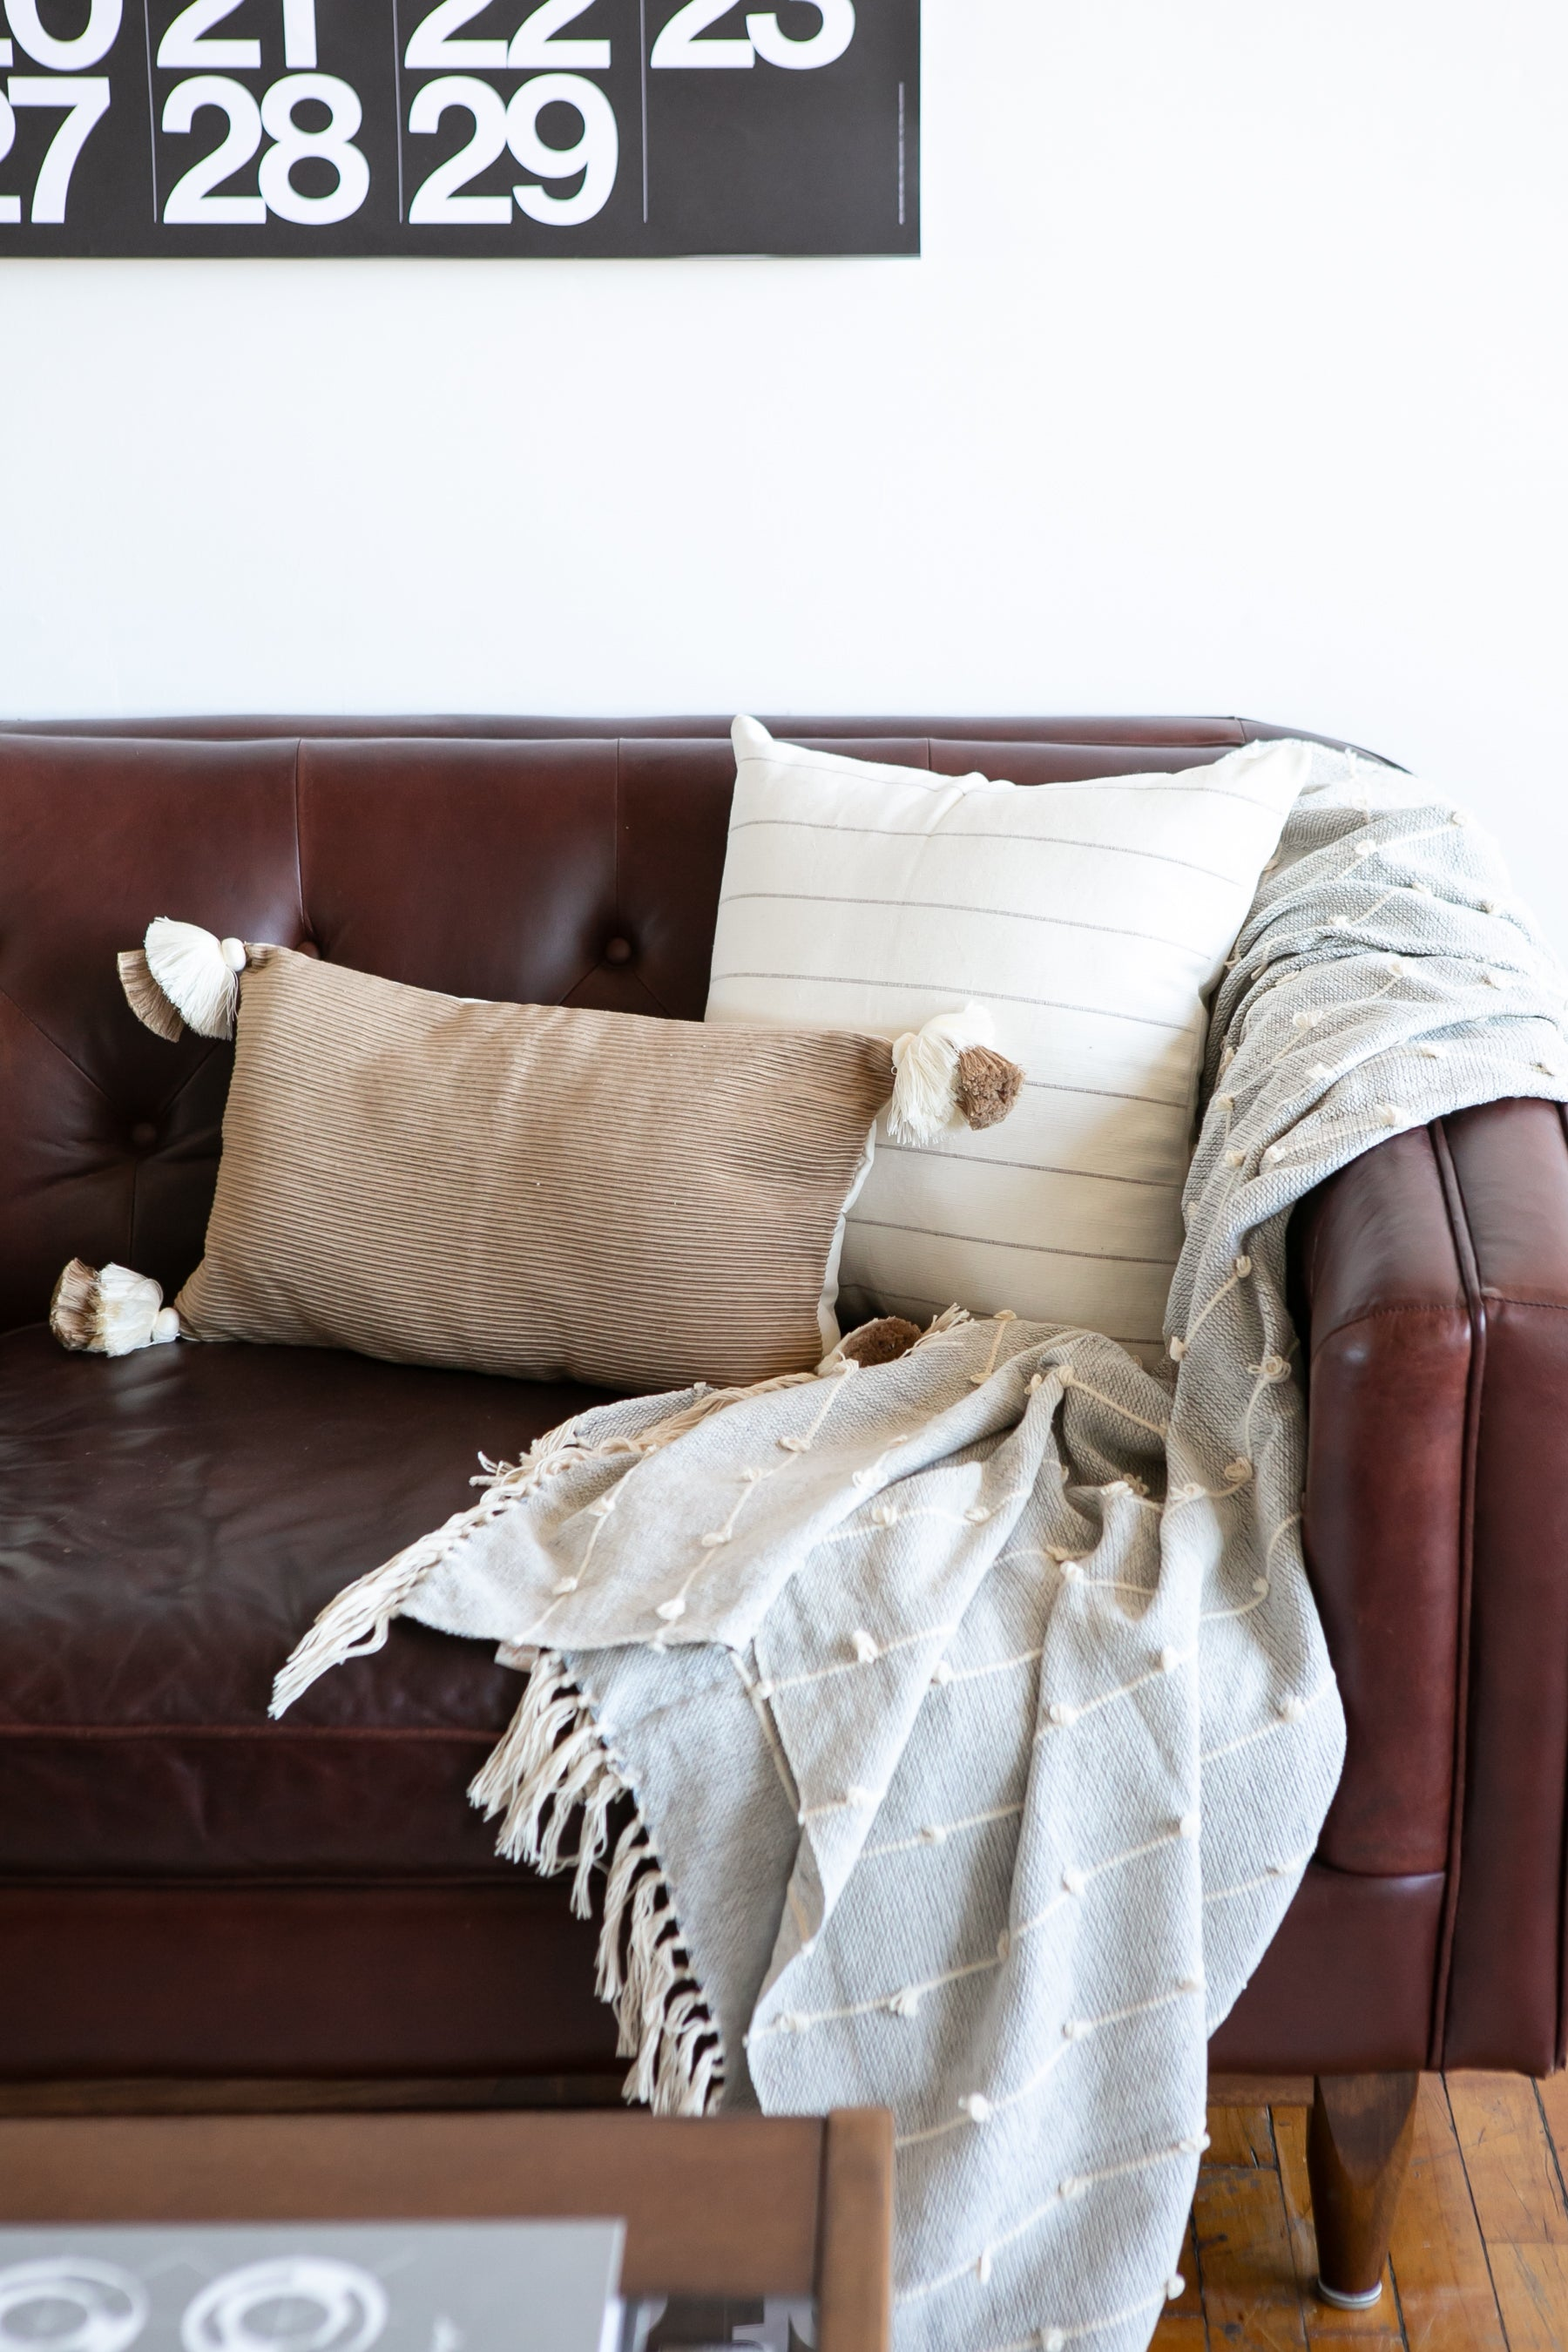 How to Style Your Sofa - 3 Easy Ways